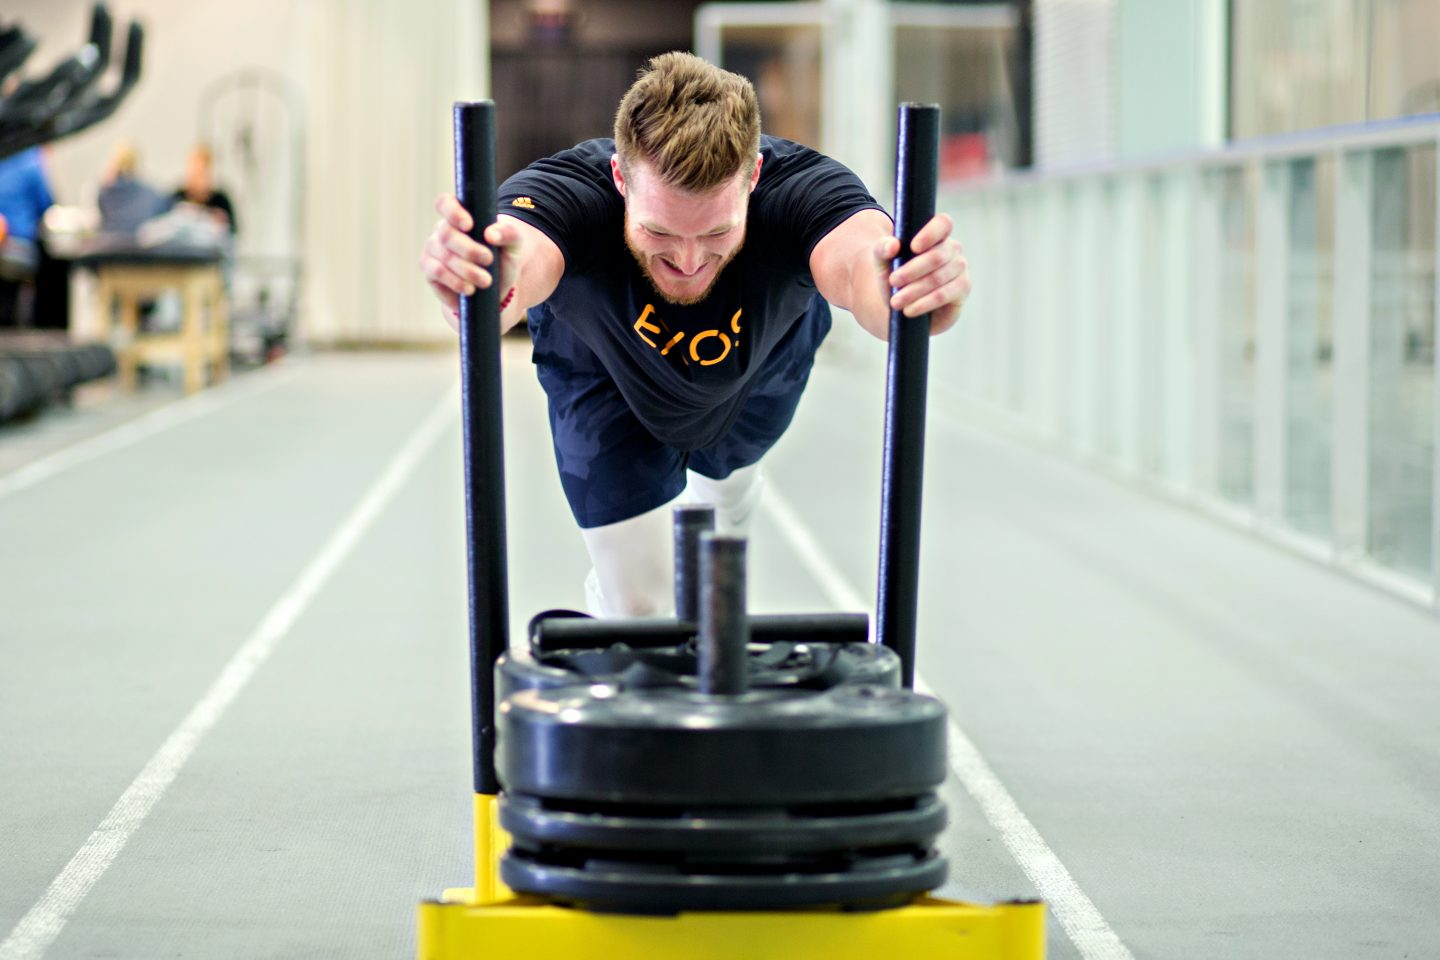 An EXOS trainer is working out to reach his goals and new year resolutions in a gym_reaching goals